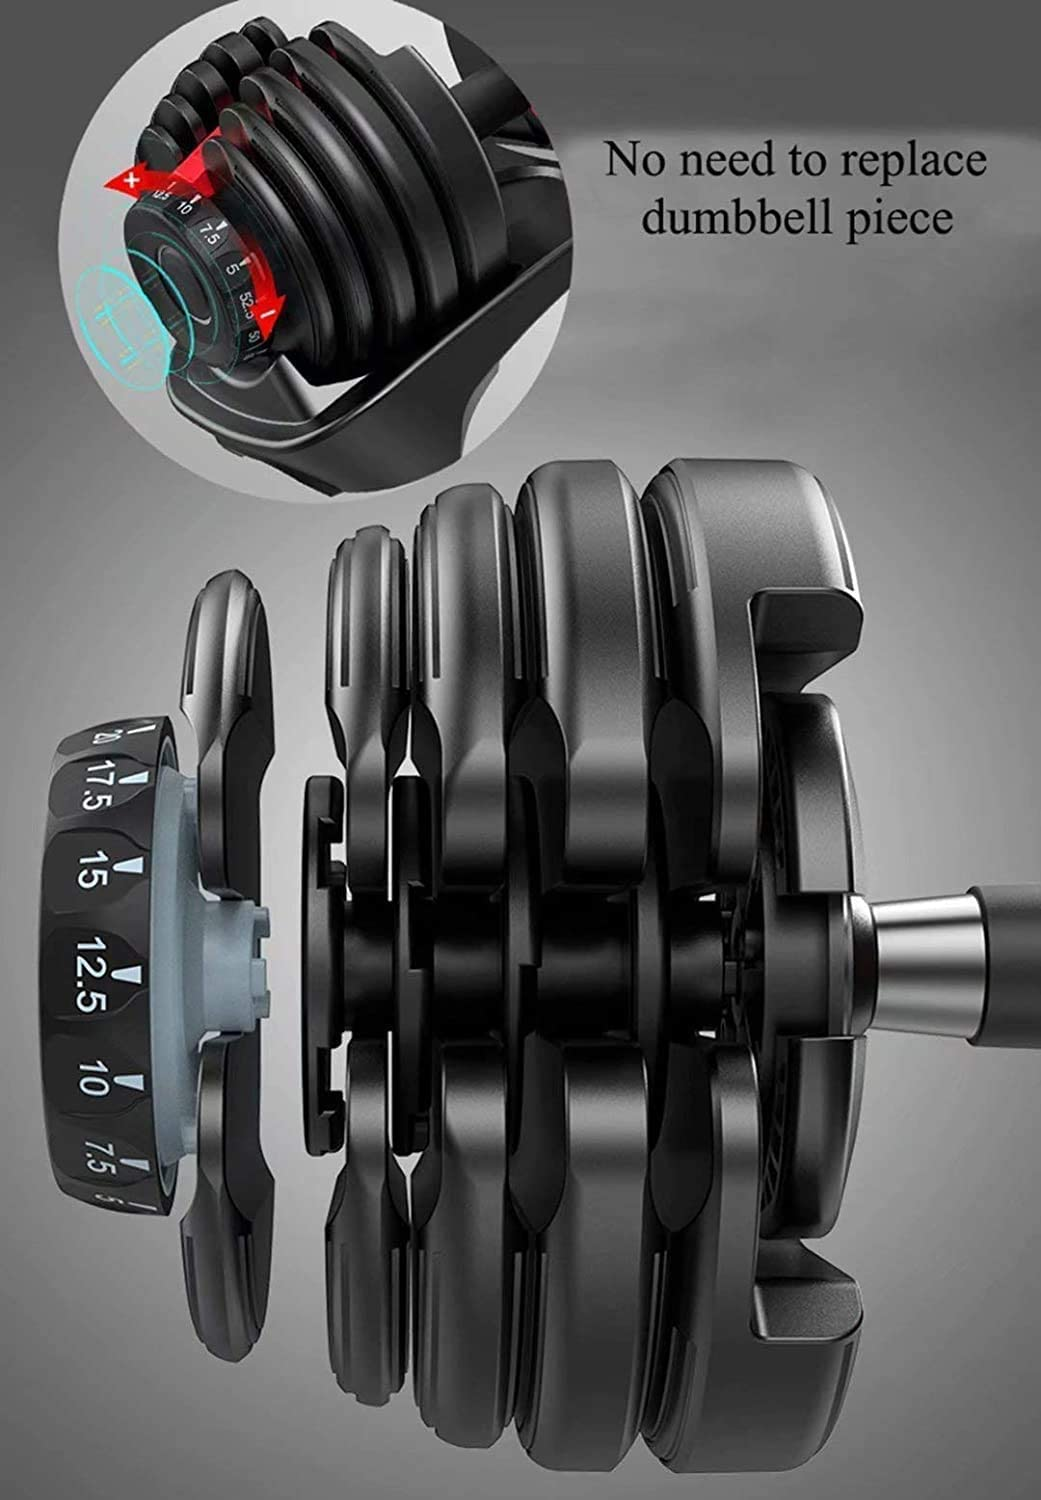 52.5Lbs YPC Single Adjustable Dumbbell,5lb-52.5lb Fast Adjust Weight Dumbbell,Training Weights Gym Equipment for Man and Women Exercise Dumbbell